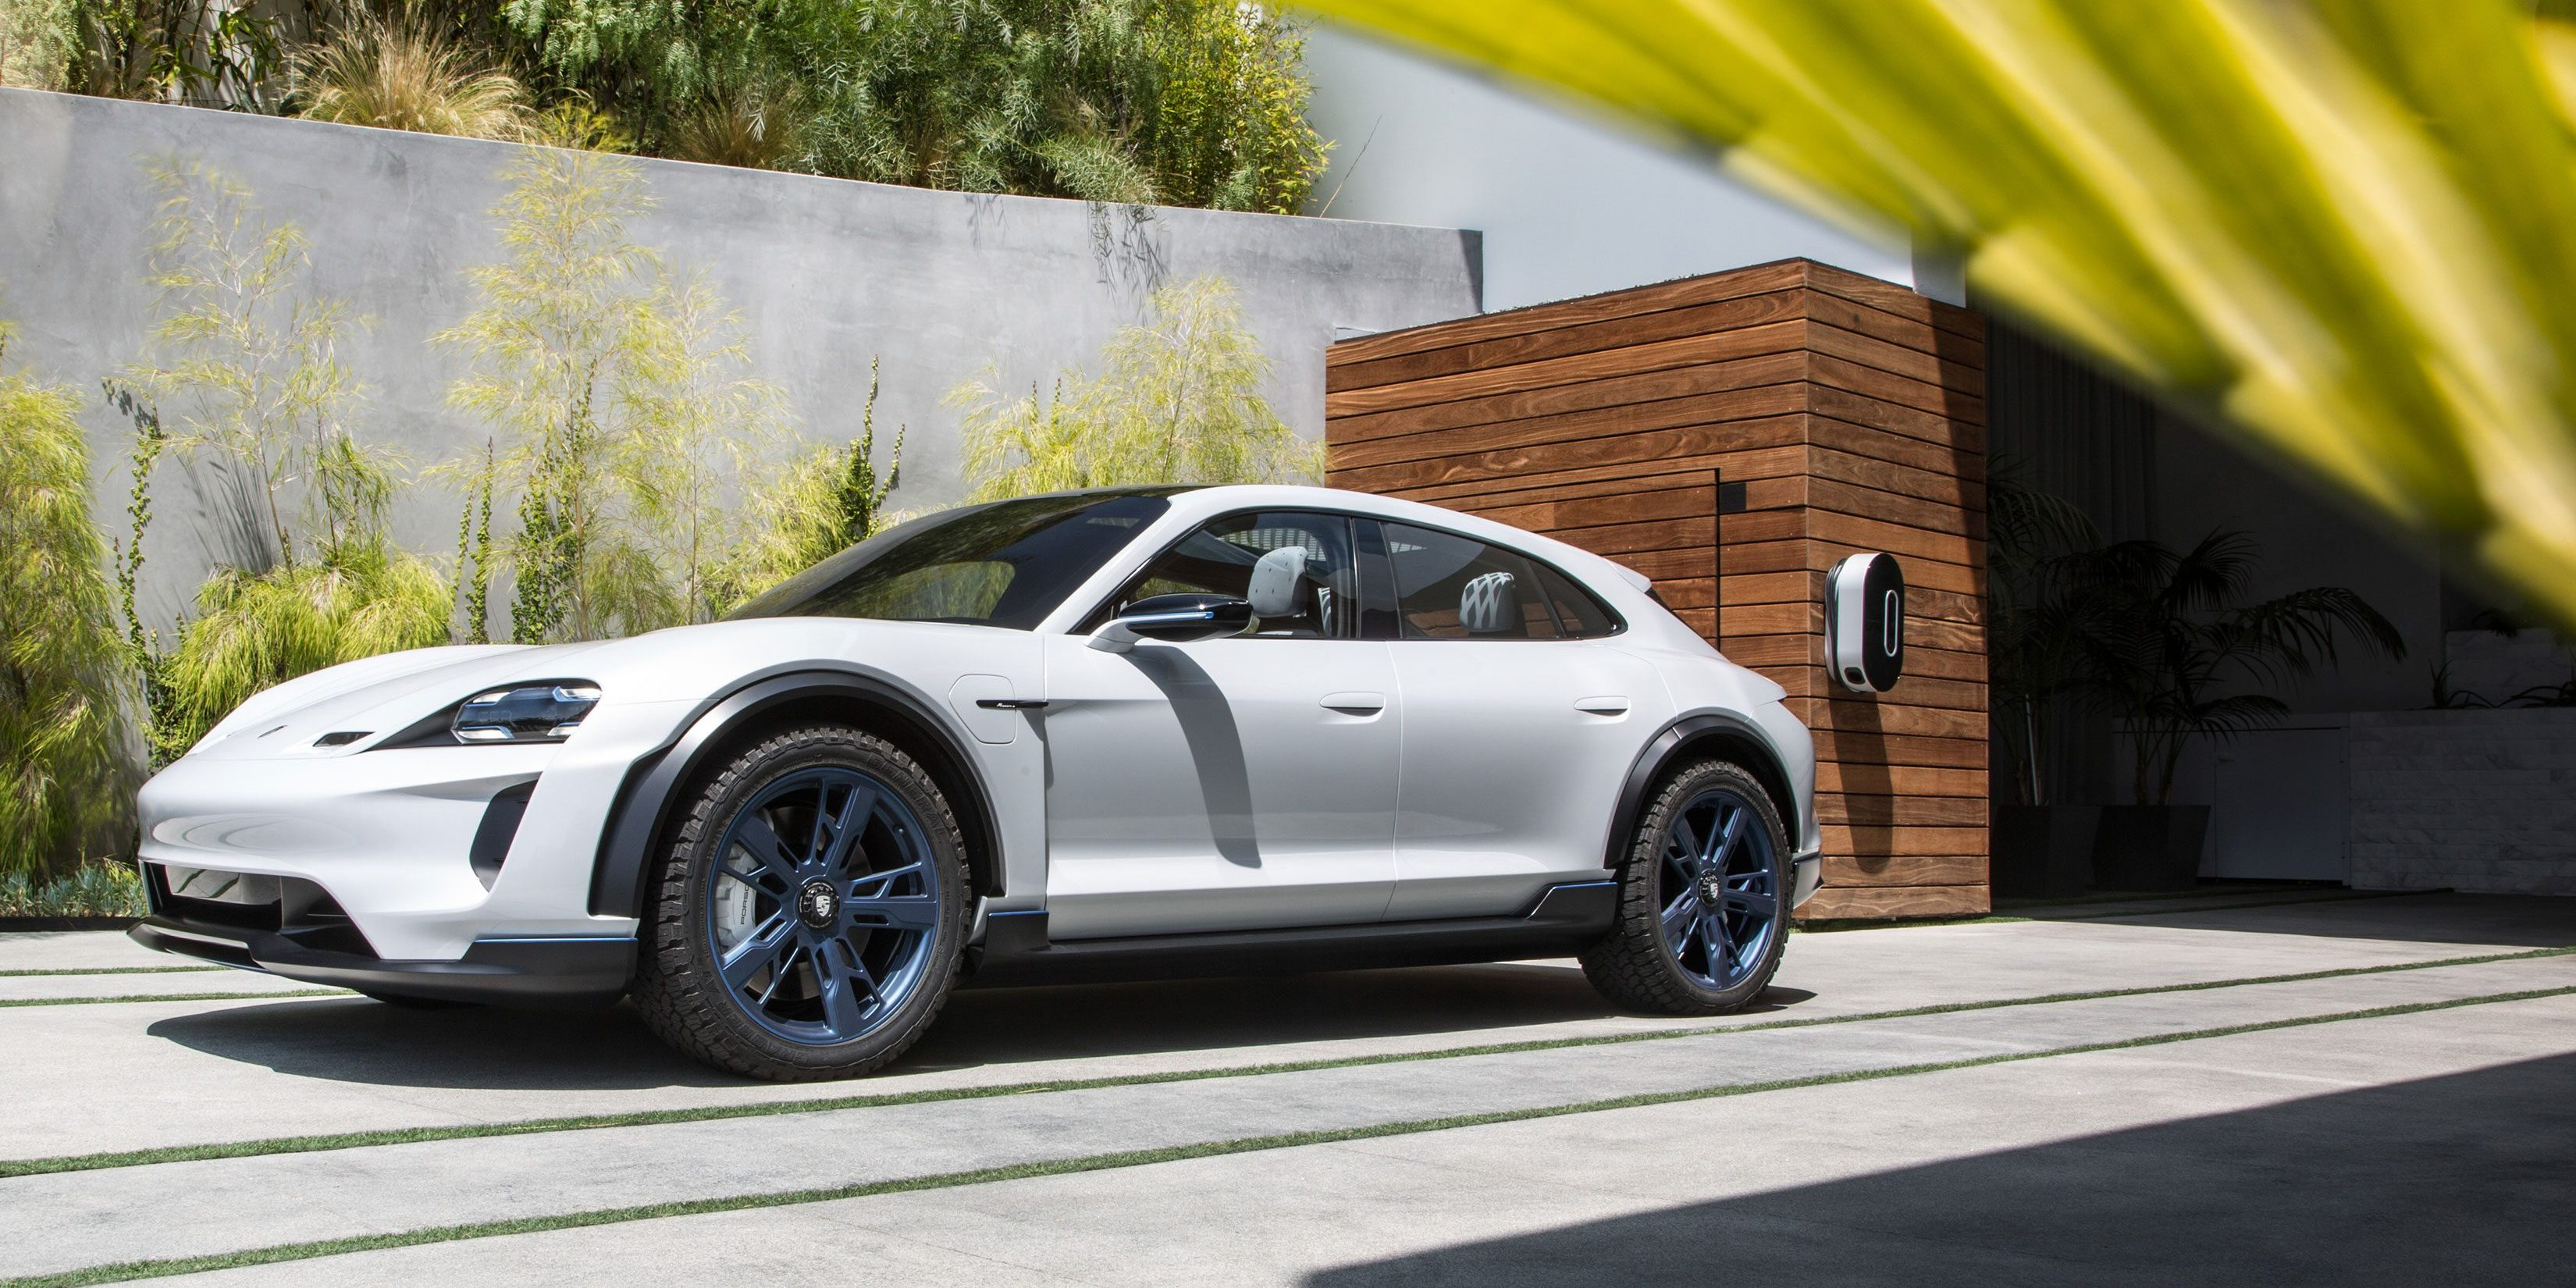 Cuv Car Porsche Greenlights All Electric Taycan Cuv For Production Based